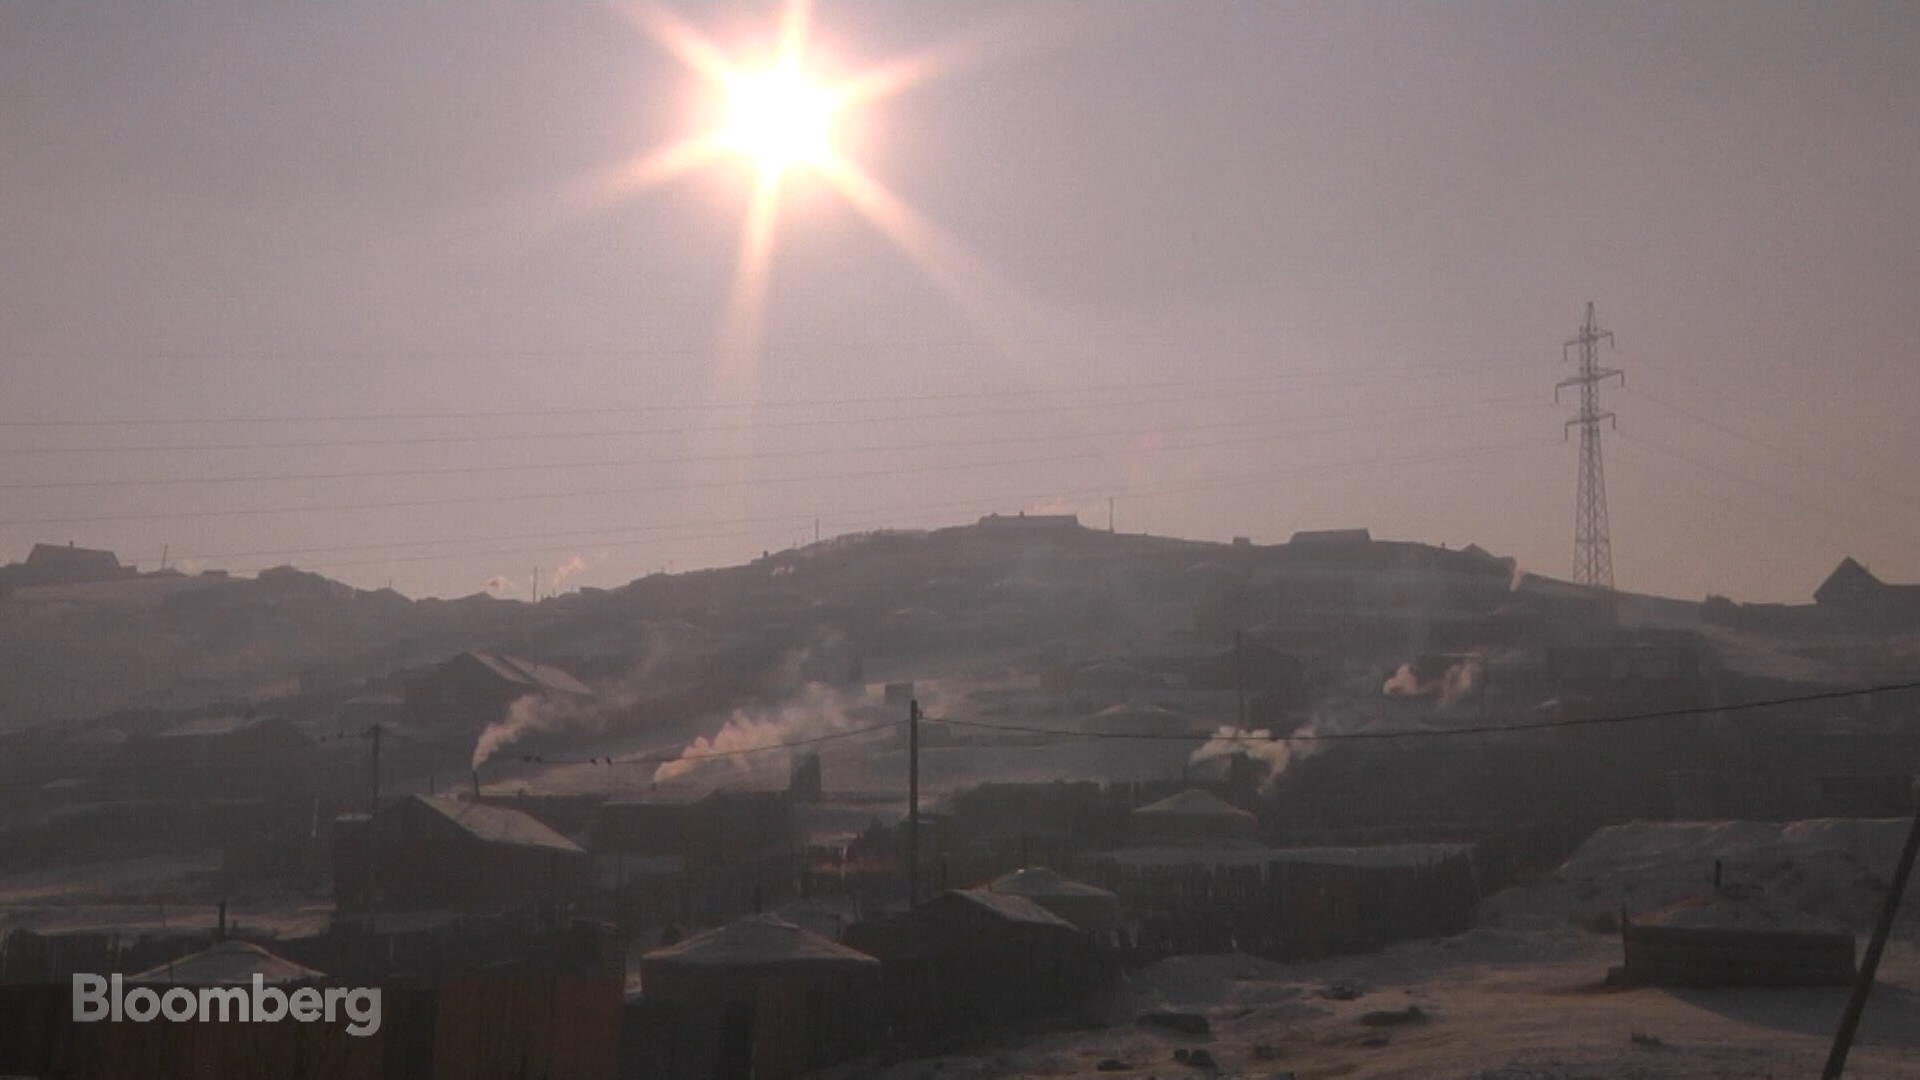 mongolian air pollution essay Watch video if you think air pollution in china has been bad, just look at mongolia bloomberg the company & its products bloomberg anywhere remote login bloomberg anywhere login.